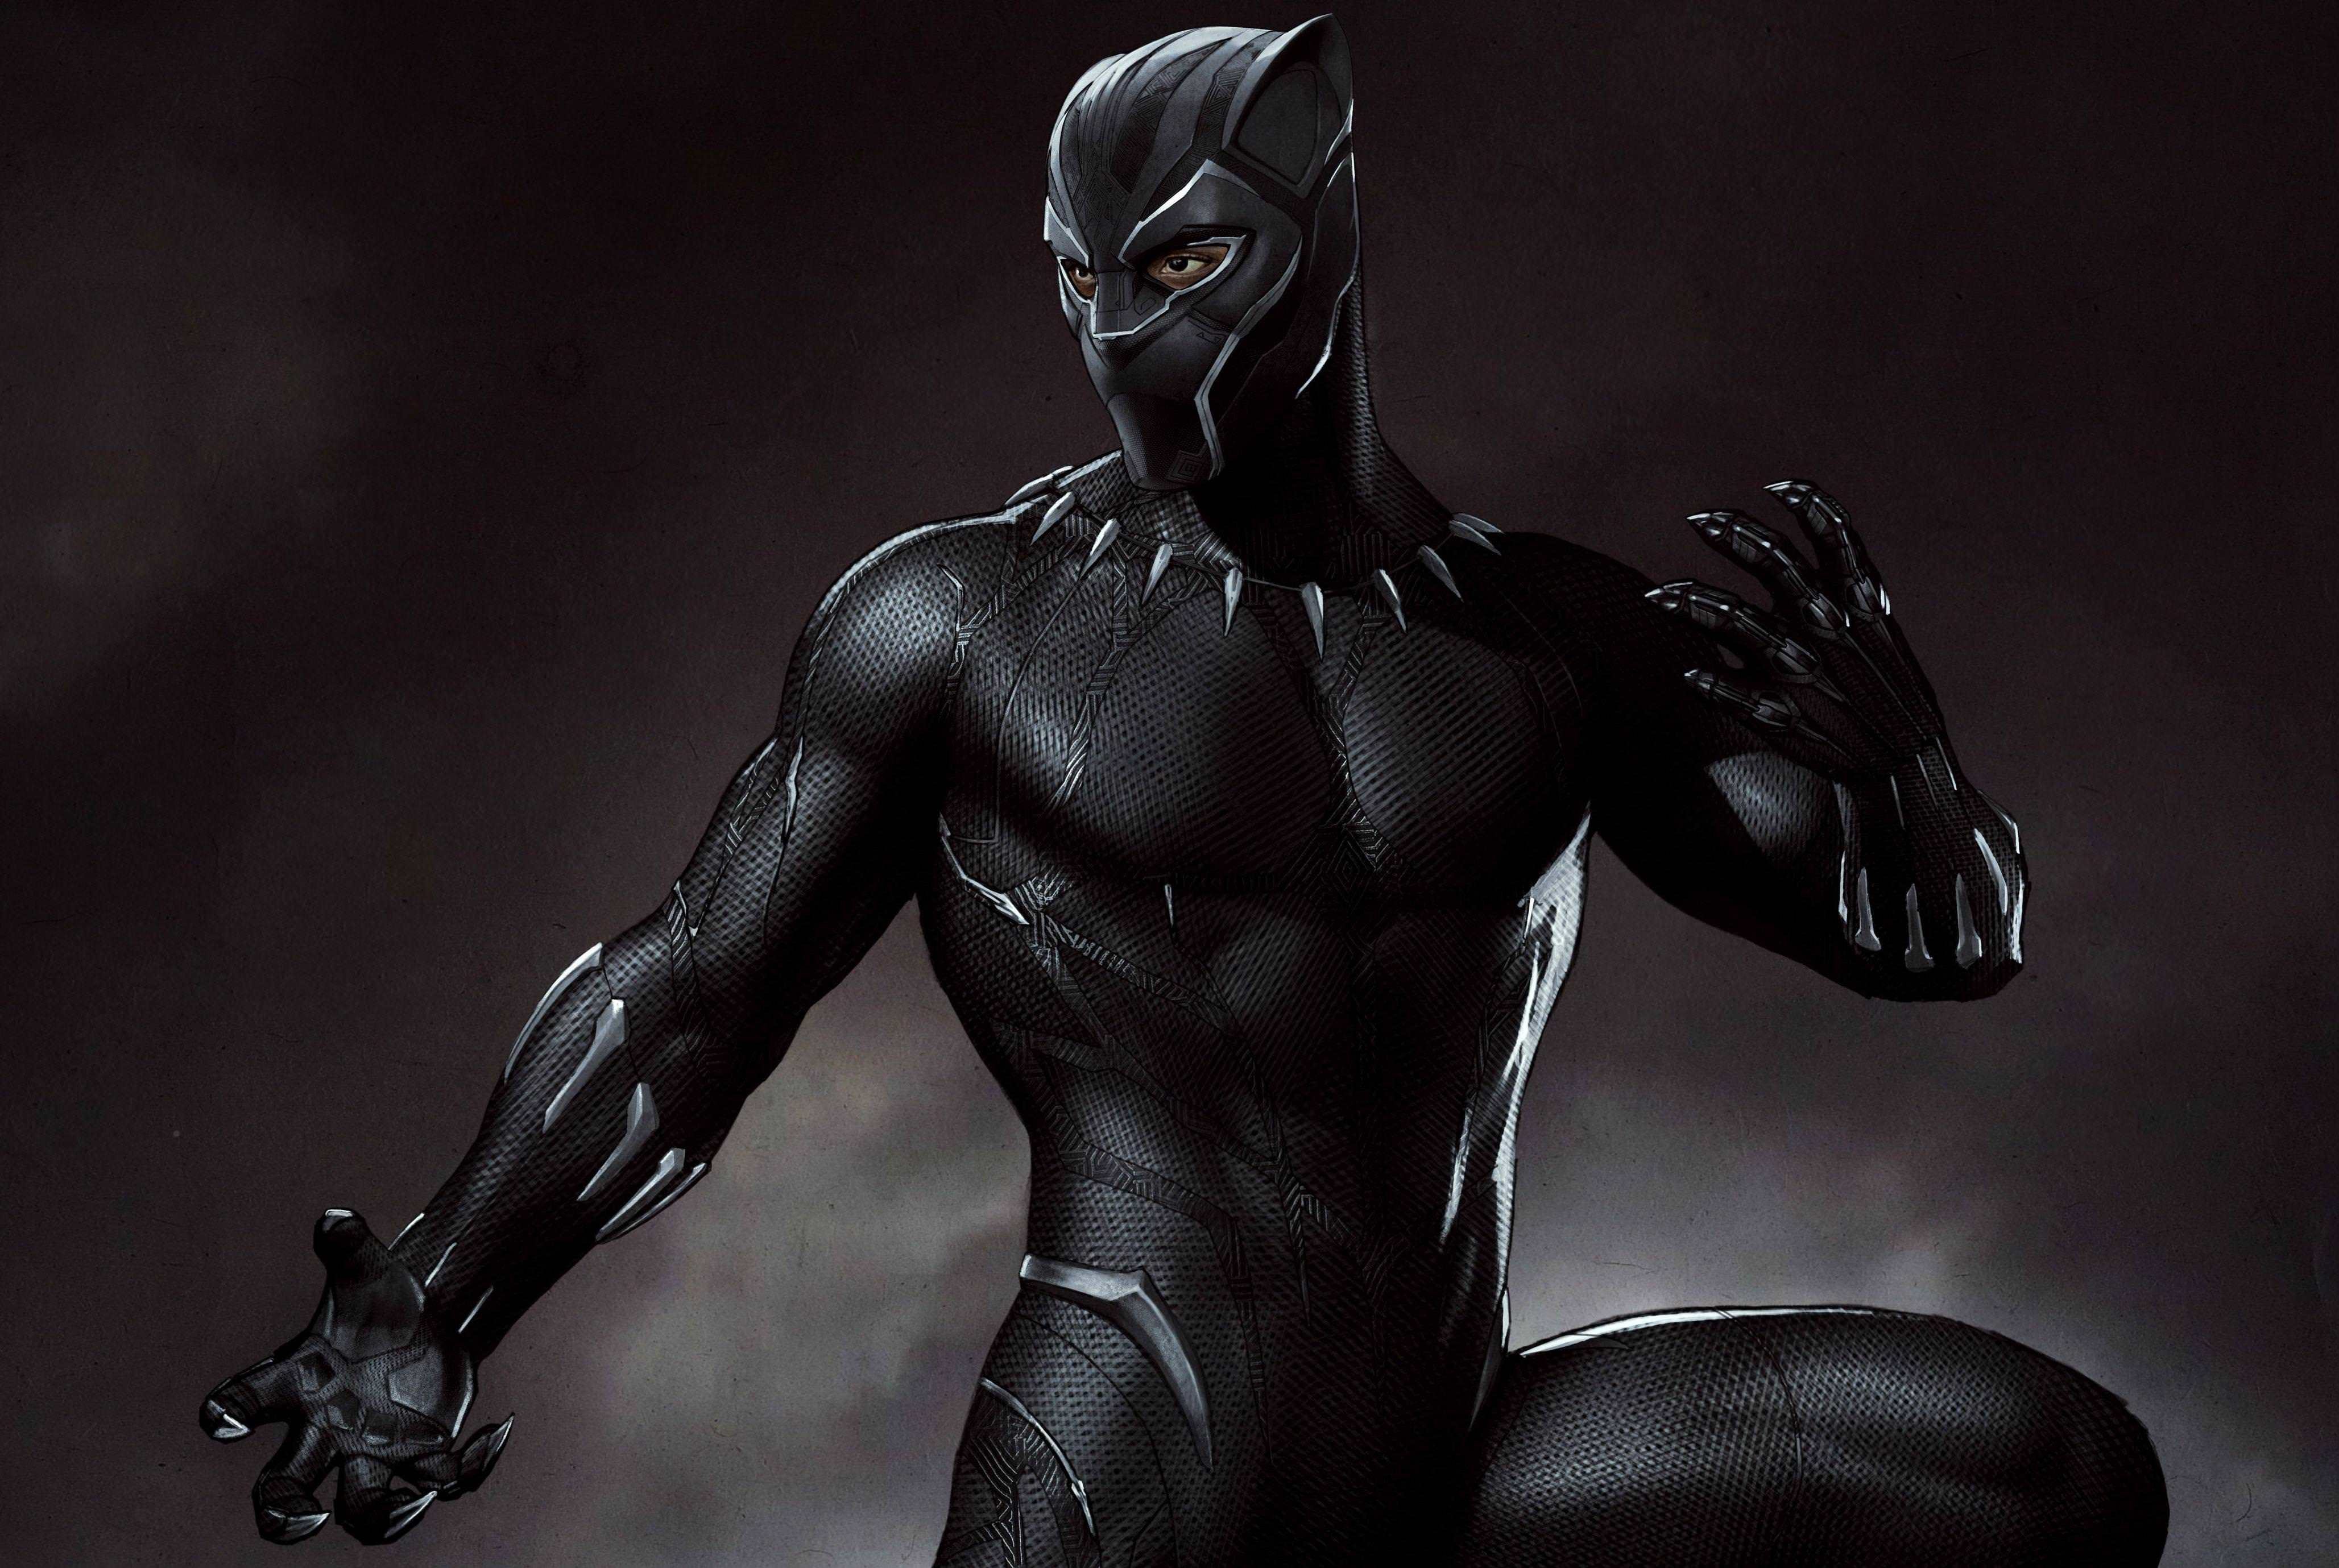 Avengers Character Black Panther Hd Wallpaper Collection Yl Computing